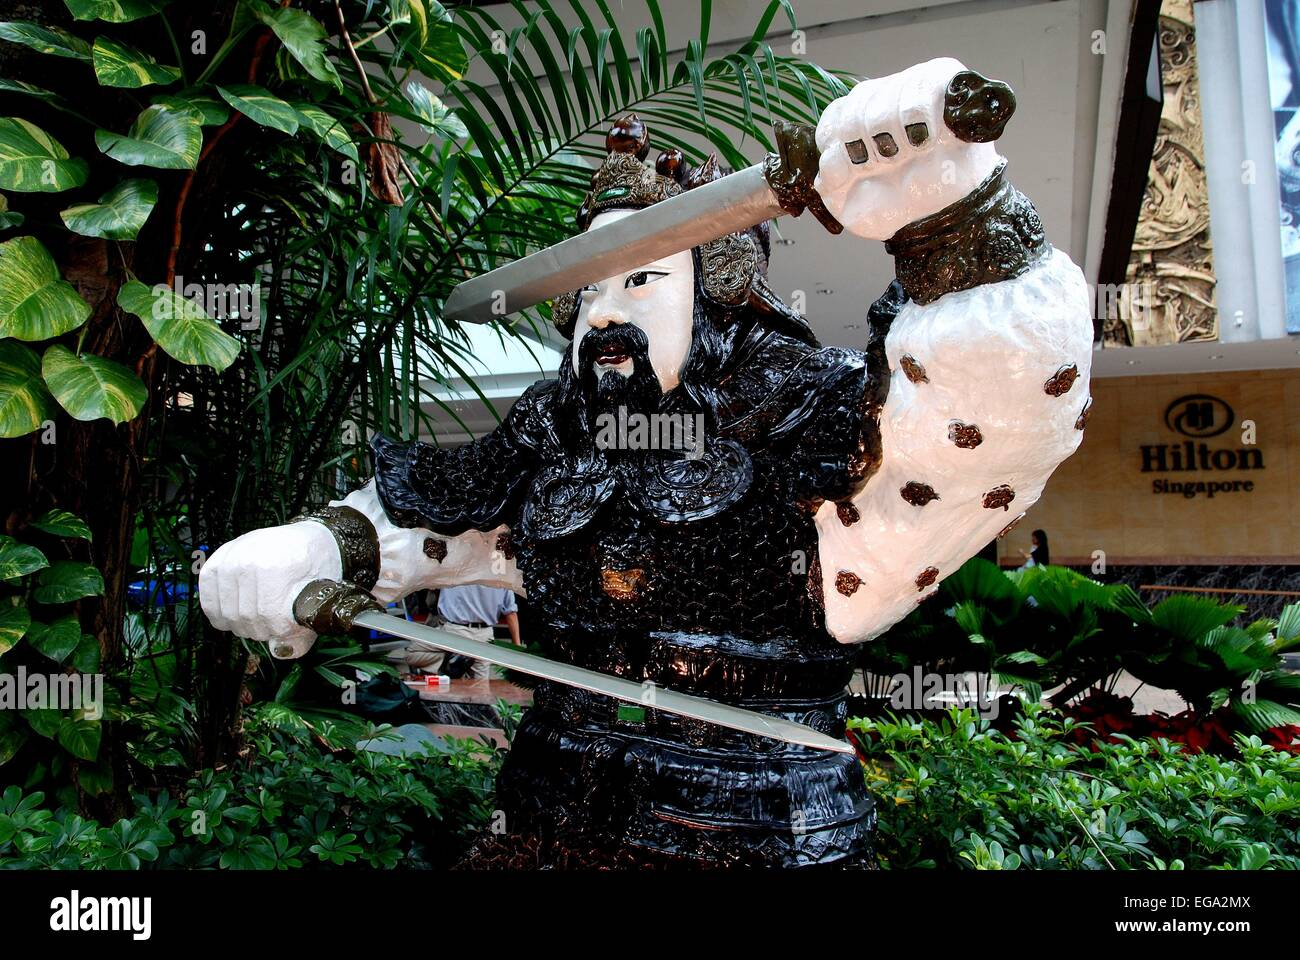 Picturesque The Orchard Hotel Stock Photos  The Orchard Hotel Stock Images  With Glamorous Singapore A Japanese Samurai Sculpture Stands In Front Of The Hilton  Singapore Hotel On Orchard With Appealing Garden Centre Uk Also India Gardens In Addition Low Garden Fencing And Garden Centres Norwich As Well As Merryhatton Garden Centre Additionally Free Garden Planner From Alamycom With   Glamorous The Orchard Hotel Stock Photos  The Orchard Hotel Stock Images  With Appealing Singapore A Japanese Samurai Sculpture Stands In Front Of The Hilton  Singapore Hotel On Orchard And Picturesque Garden Centre Uk Also India Gardens In Addition Low Garden Fencing From Alamycom